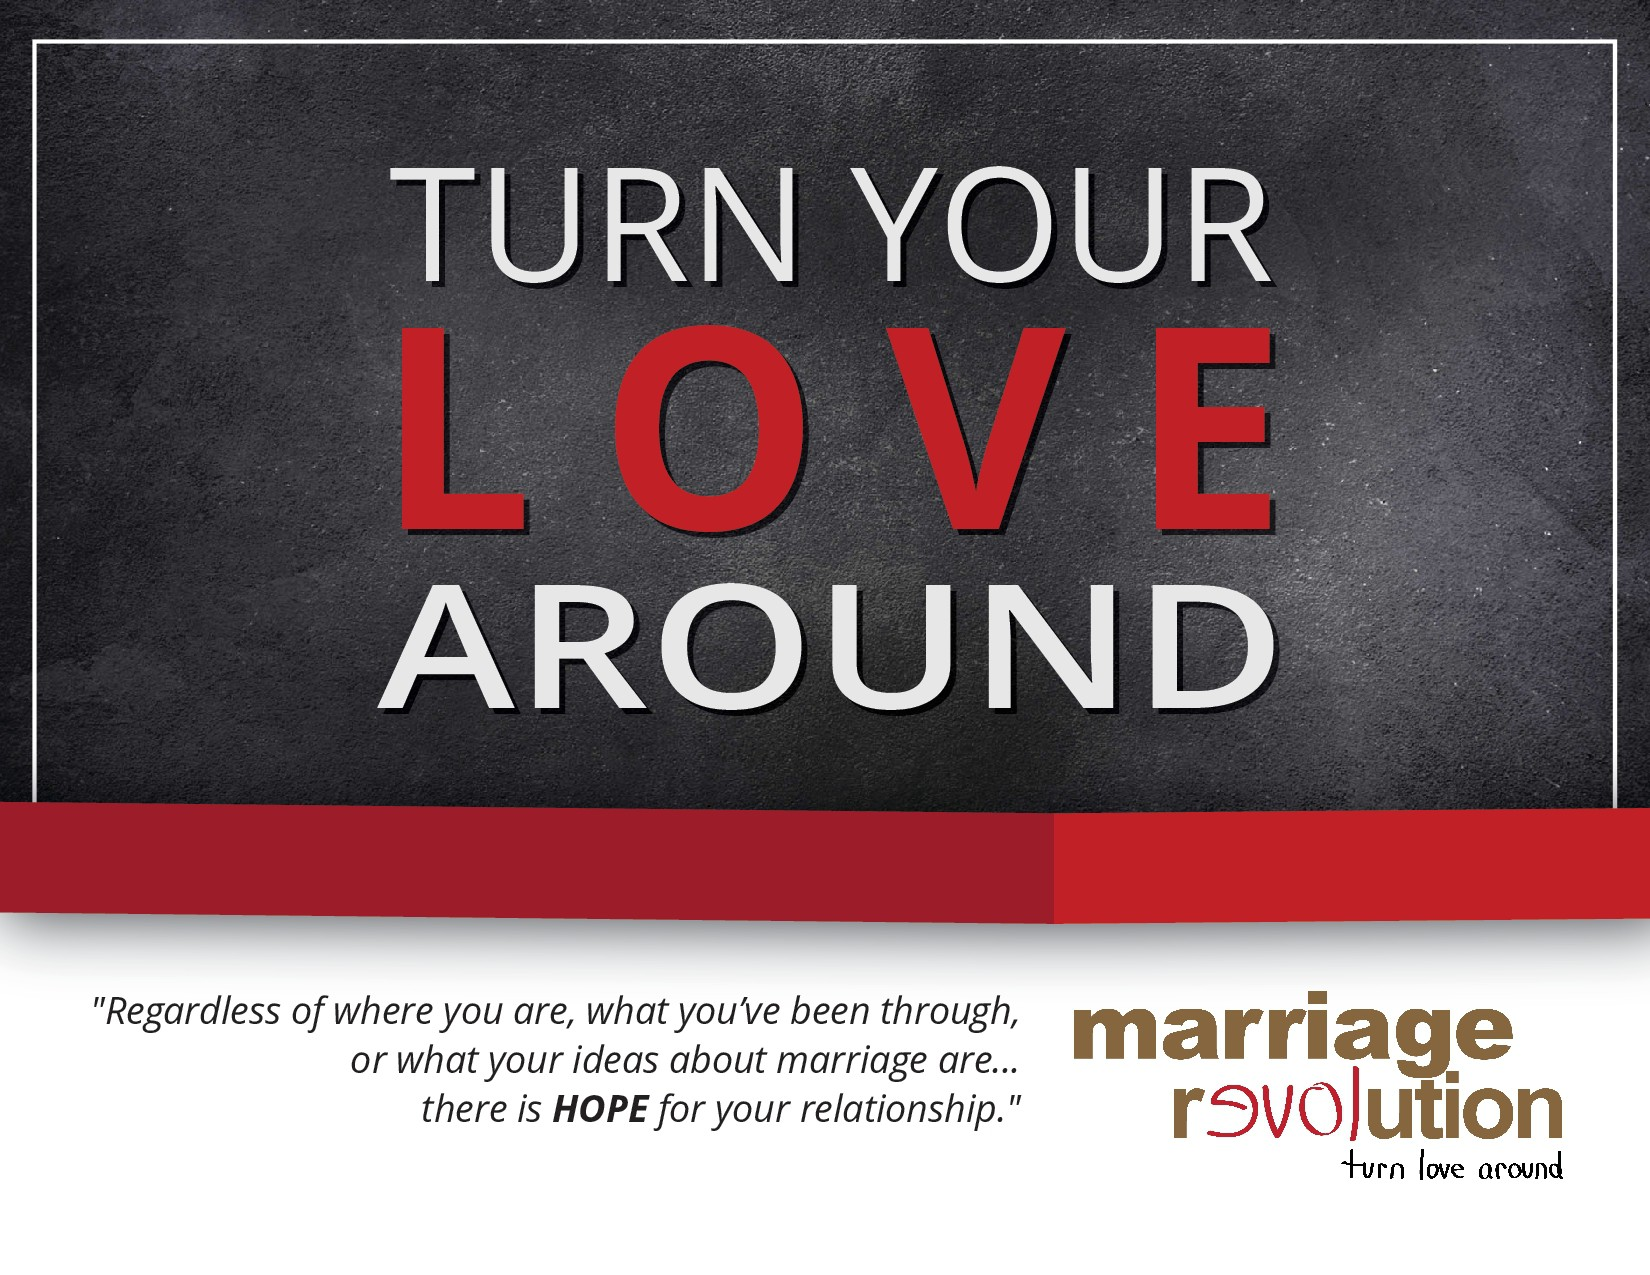 Create a Leaving Piece For a Religious Non-Profit Marriage Organization